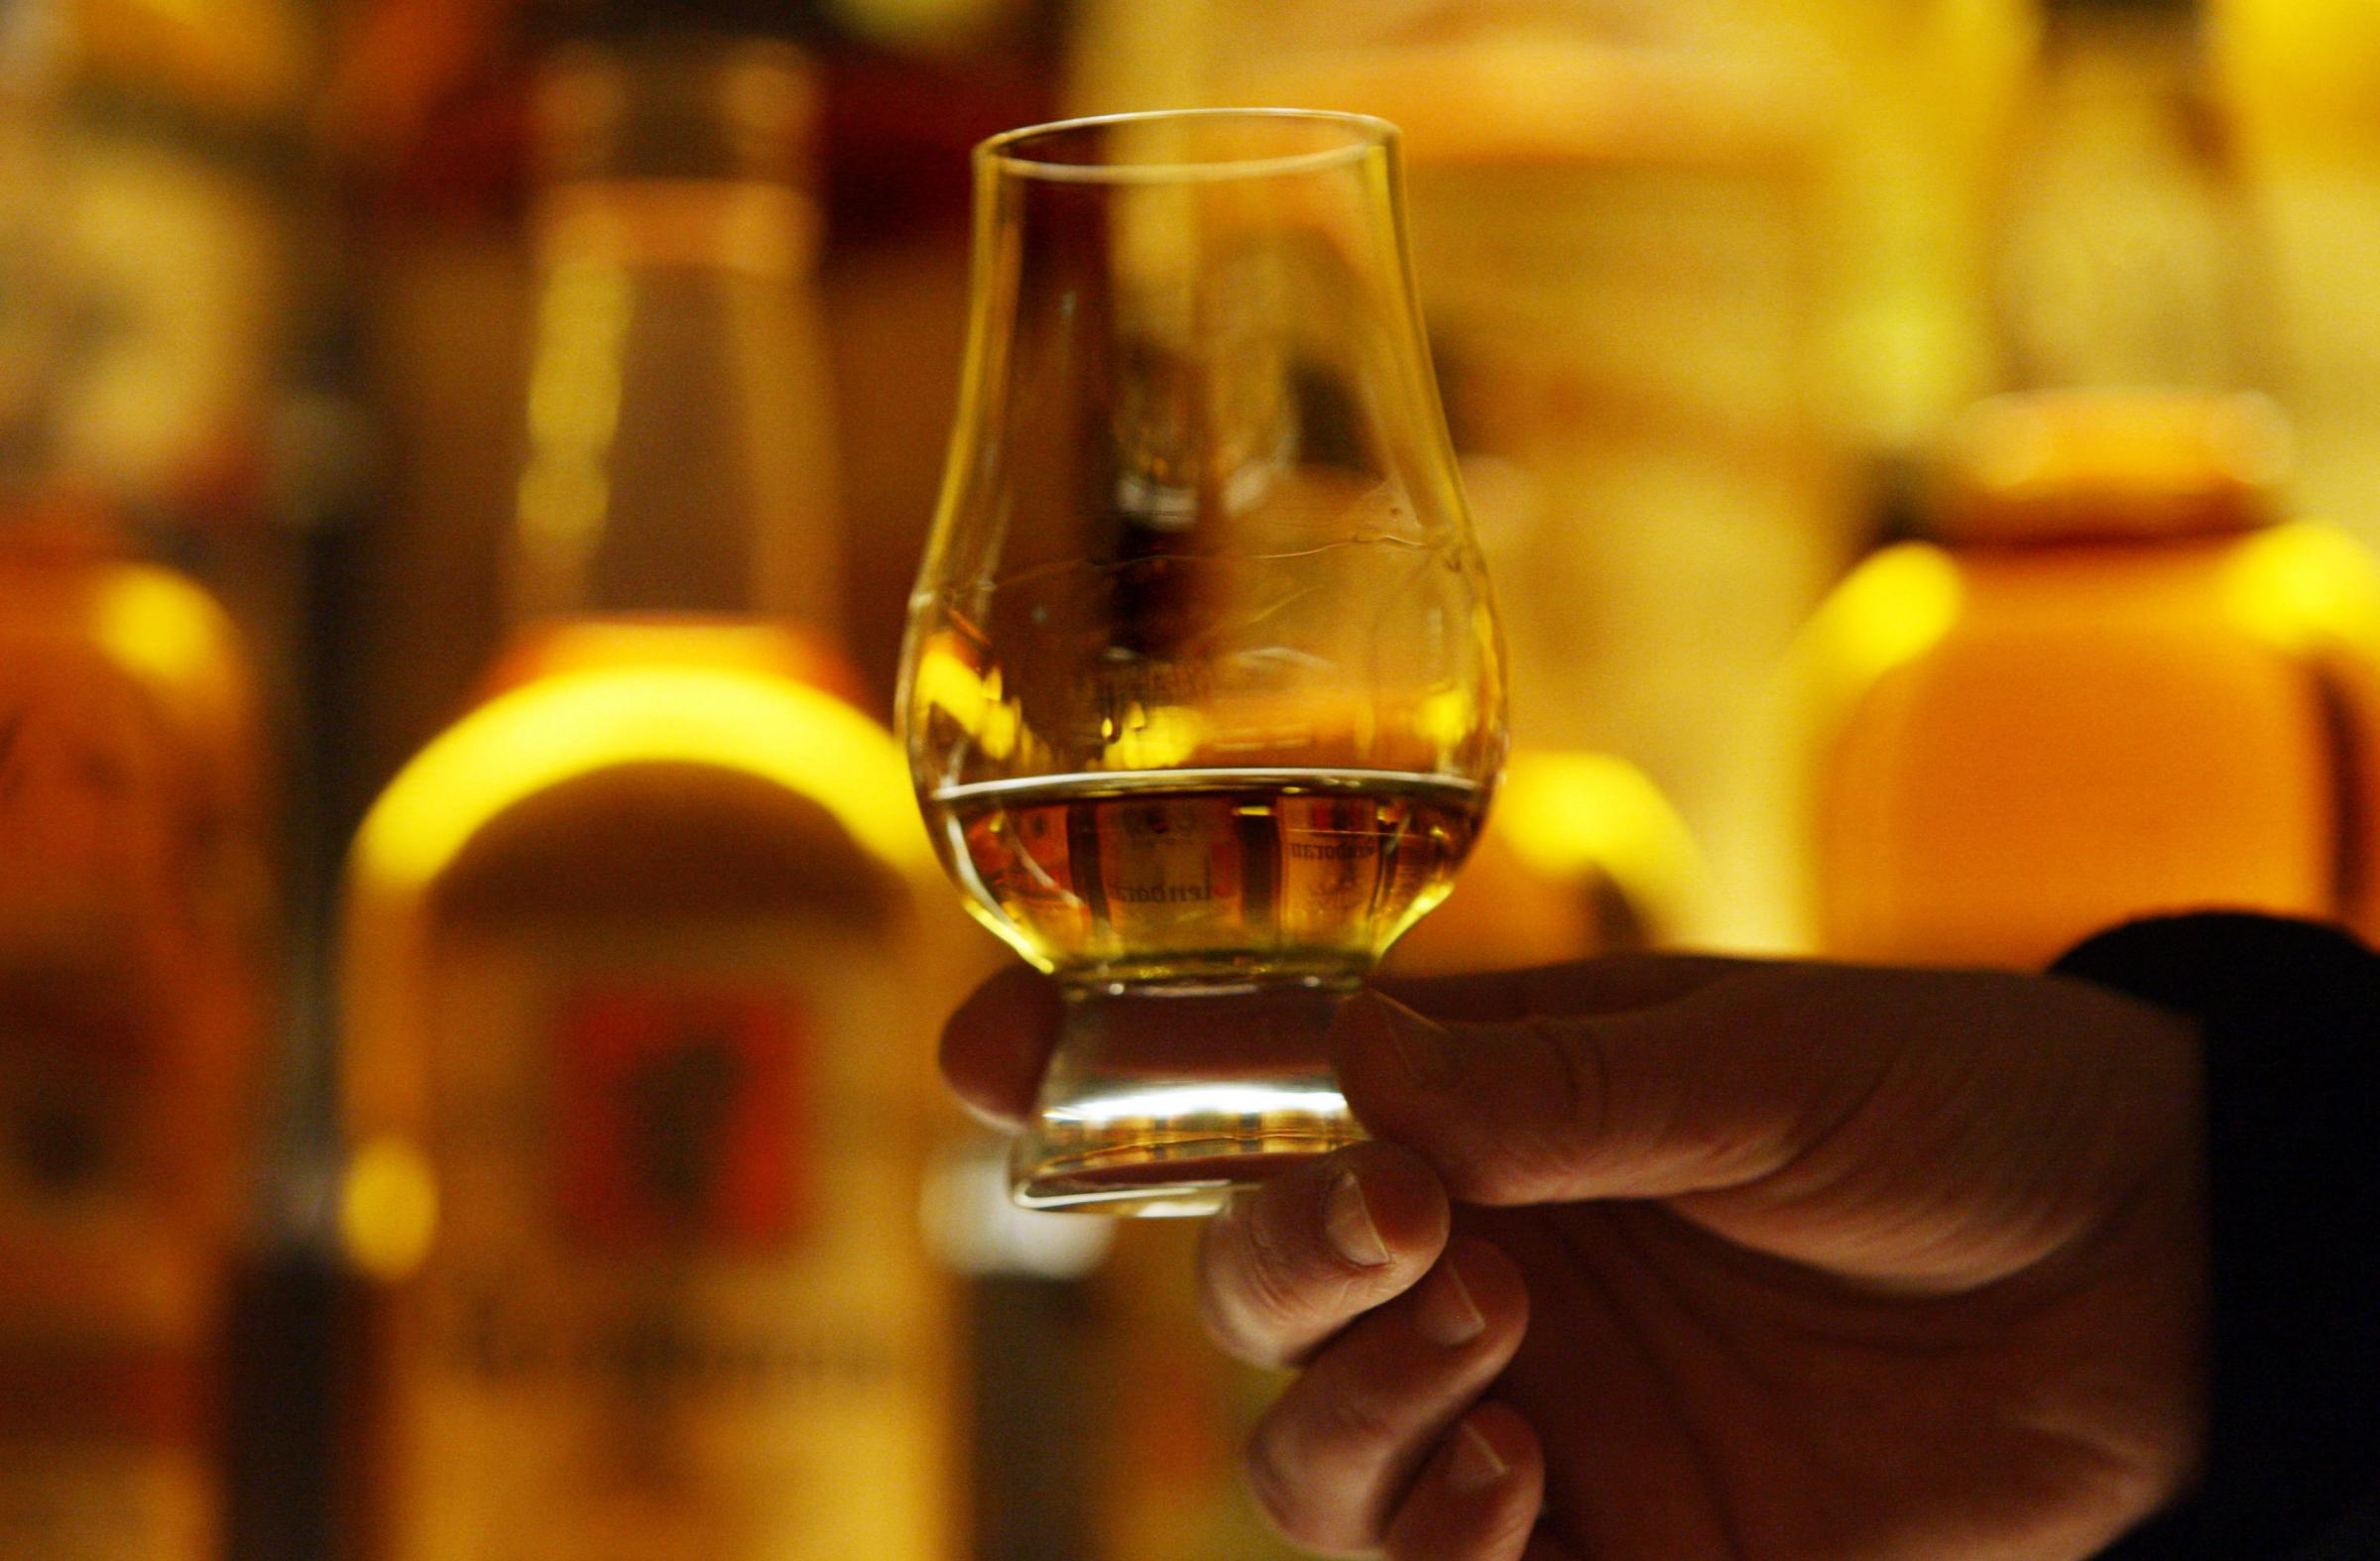 The Scotch whisky industry is still growing in strength